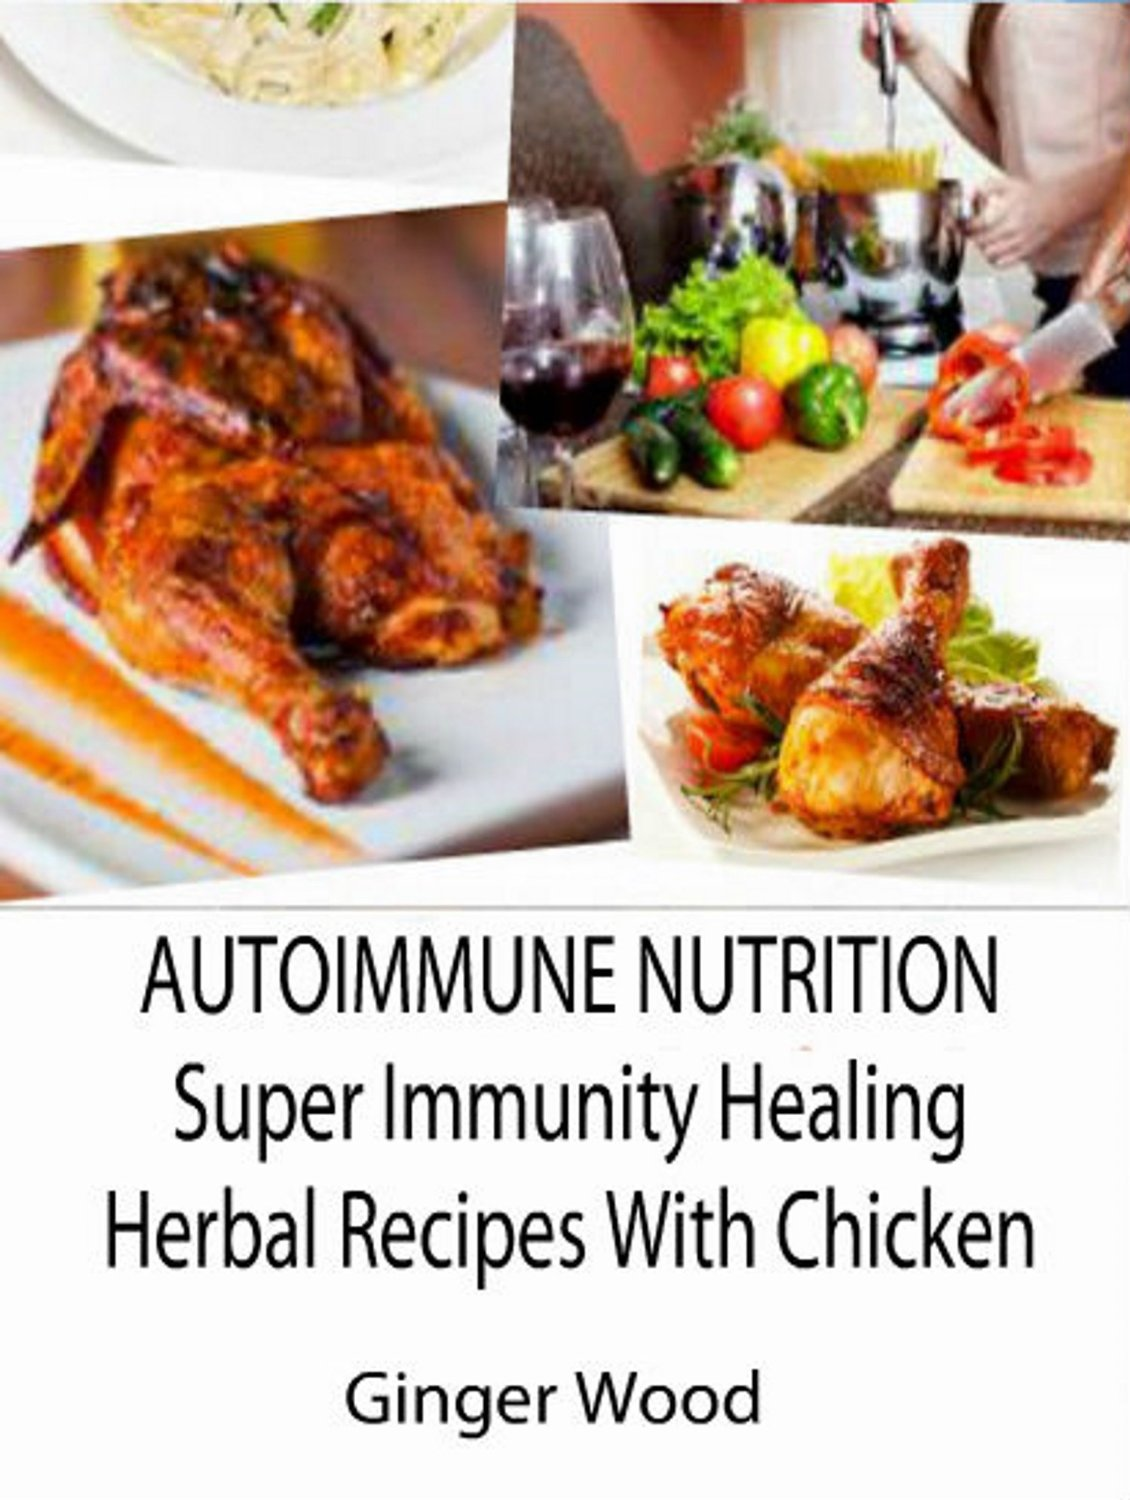 Autoimmune Nutrition: Super Immunity Healing Herbal Recipes With Chicken free download